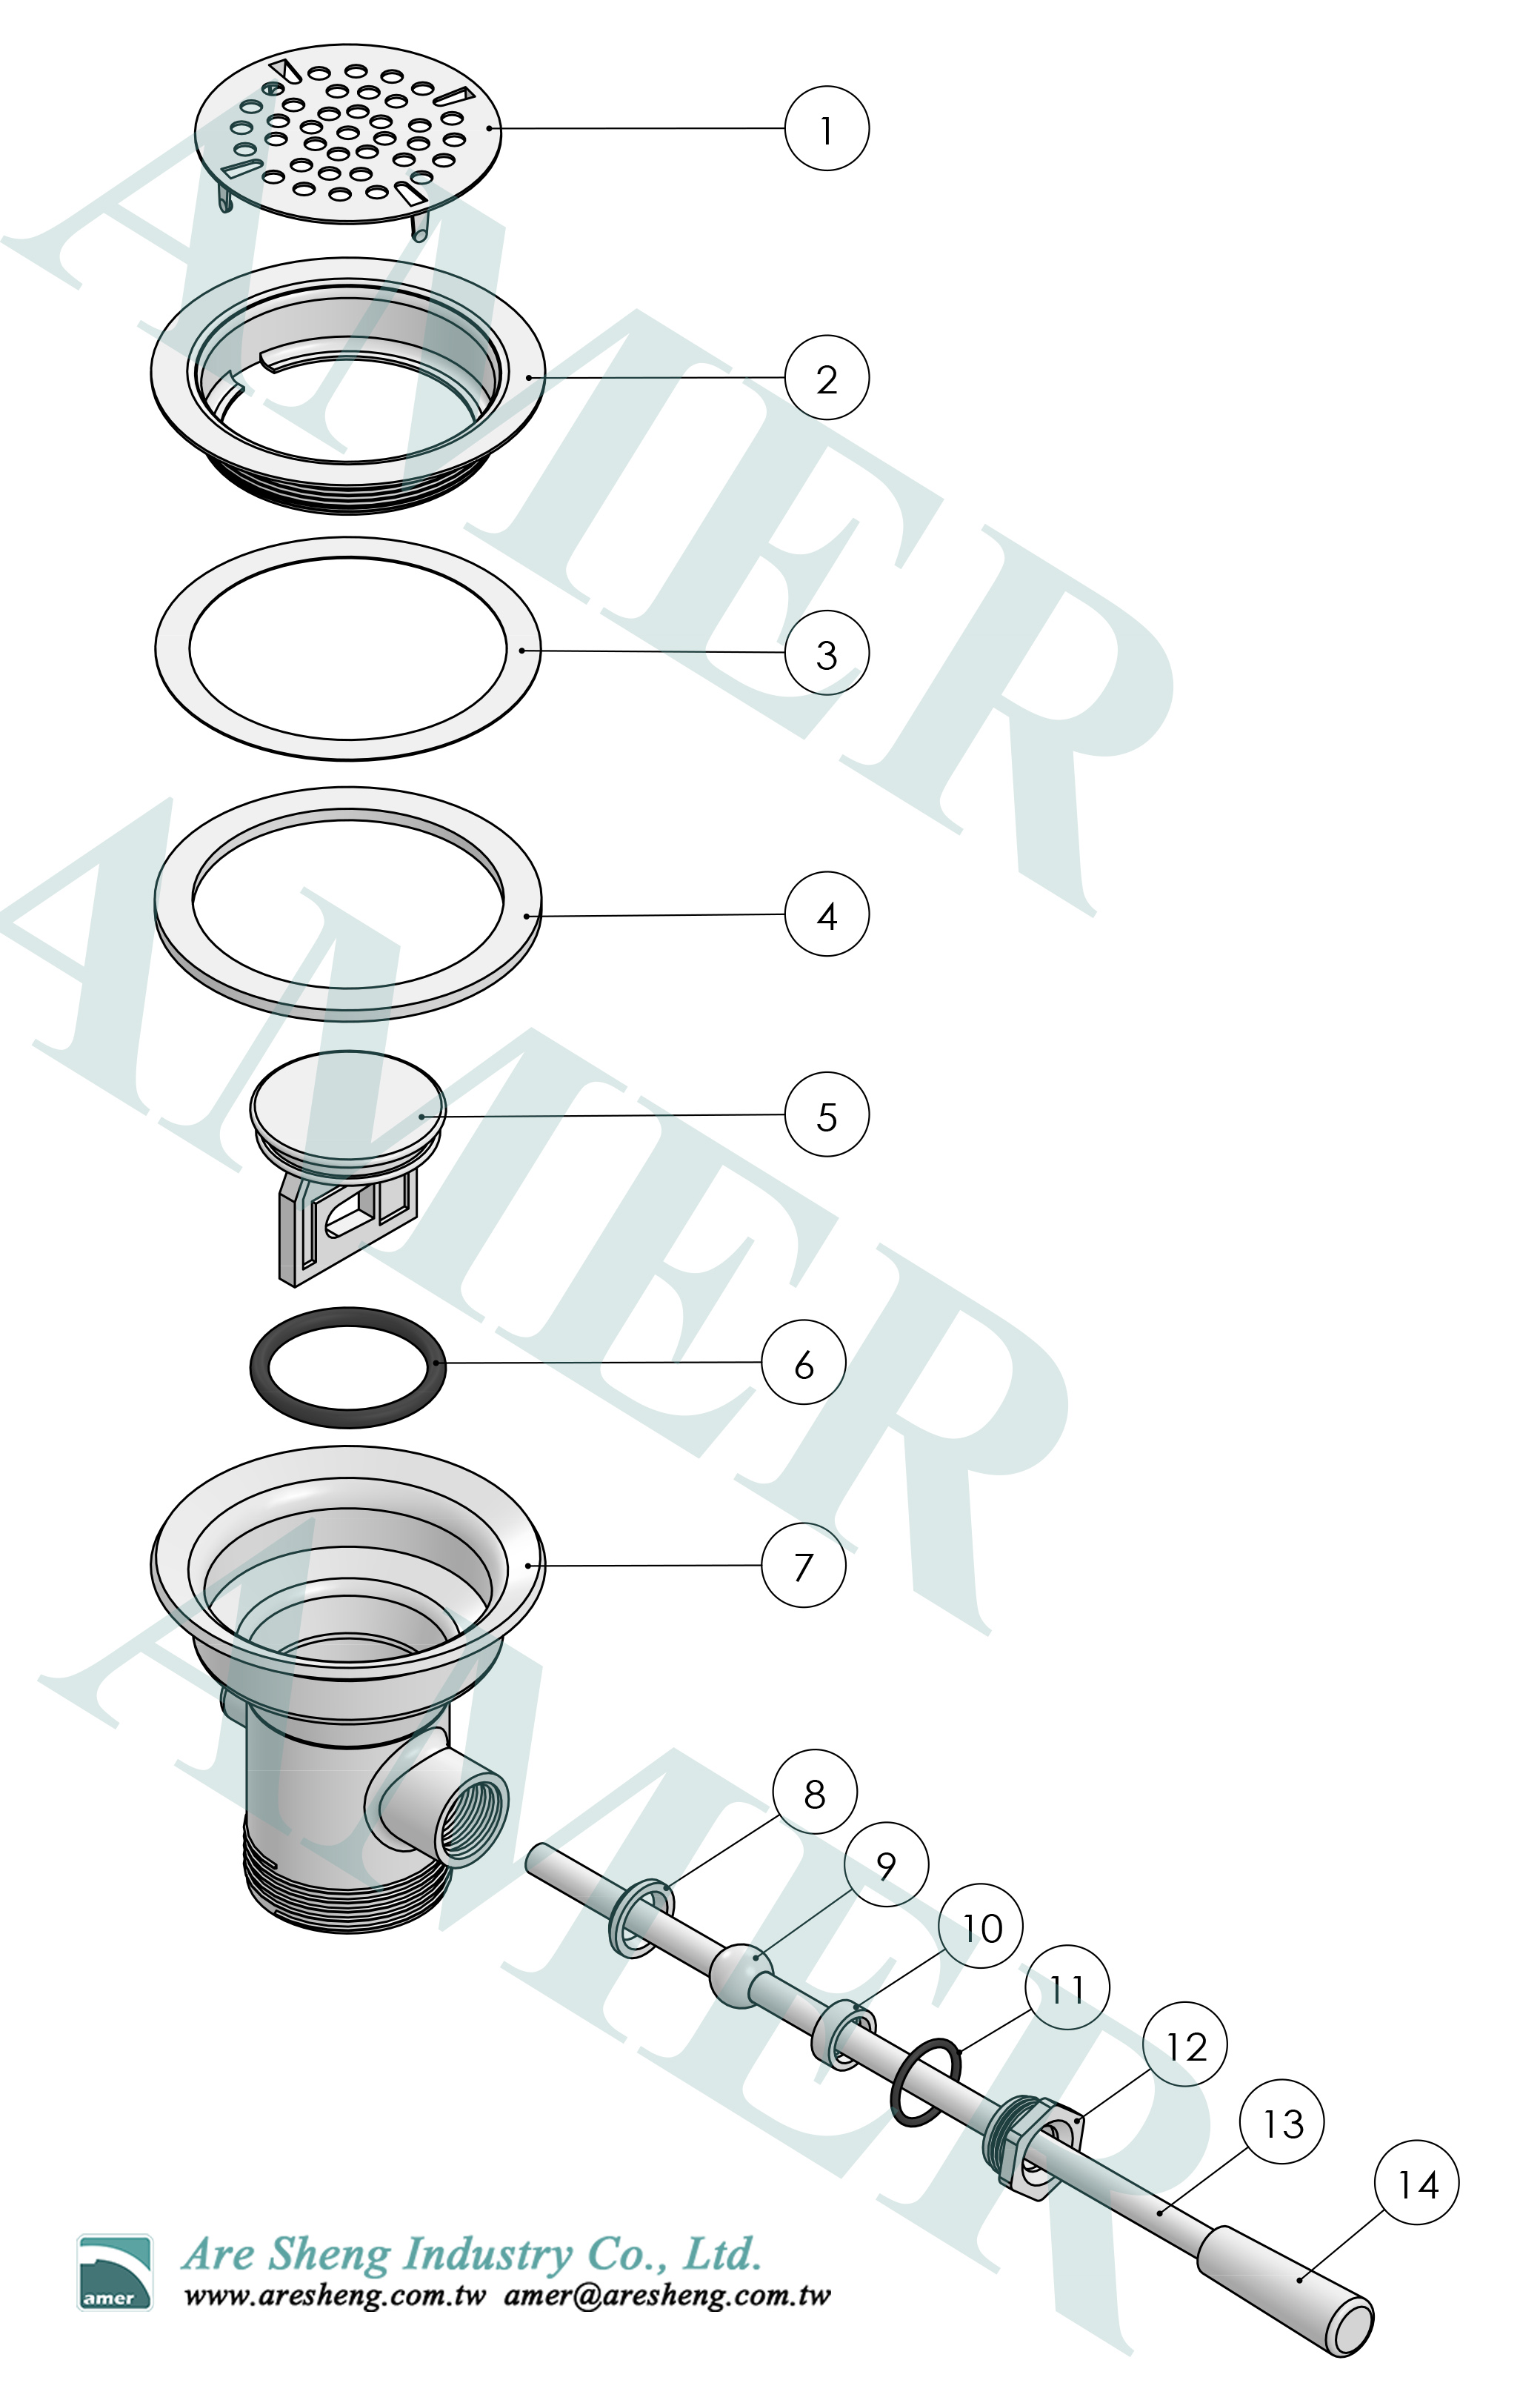 waste valve lever handle explosion drawing no overflow